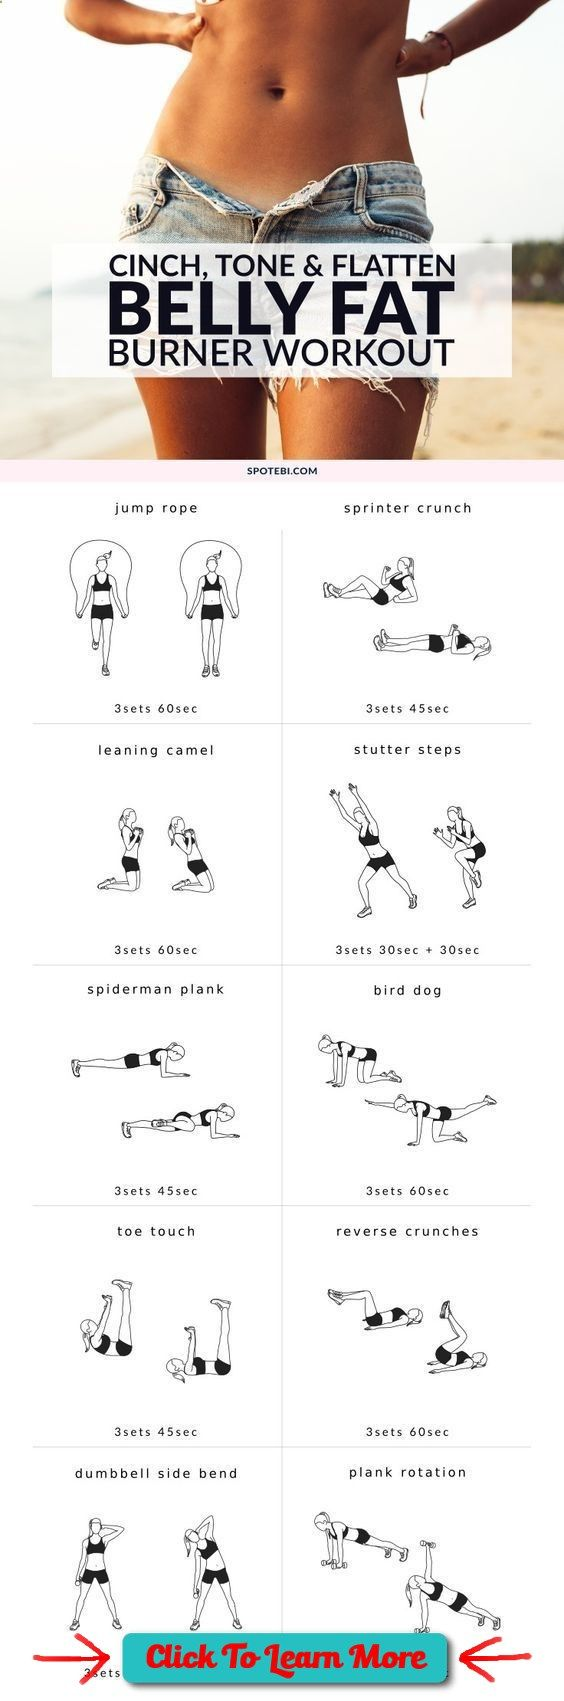 See more here ► www.youtube.com/... Tags: tips for teens to lose weight, tips for losing weight, good tips for losing weight fast - Flatten your abs and blast calories with these 10 moves! A belly fat burner workout to tone up your #health #fitness #weigh http://weightlosssucesss.pw/the-5-commandments-of-smart-dieting/